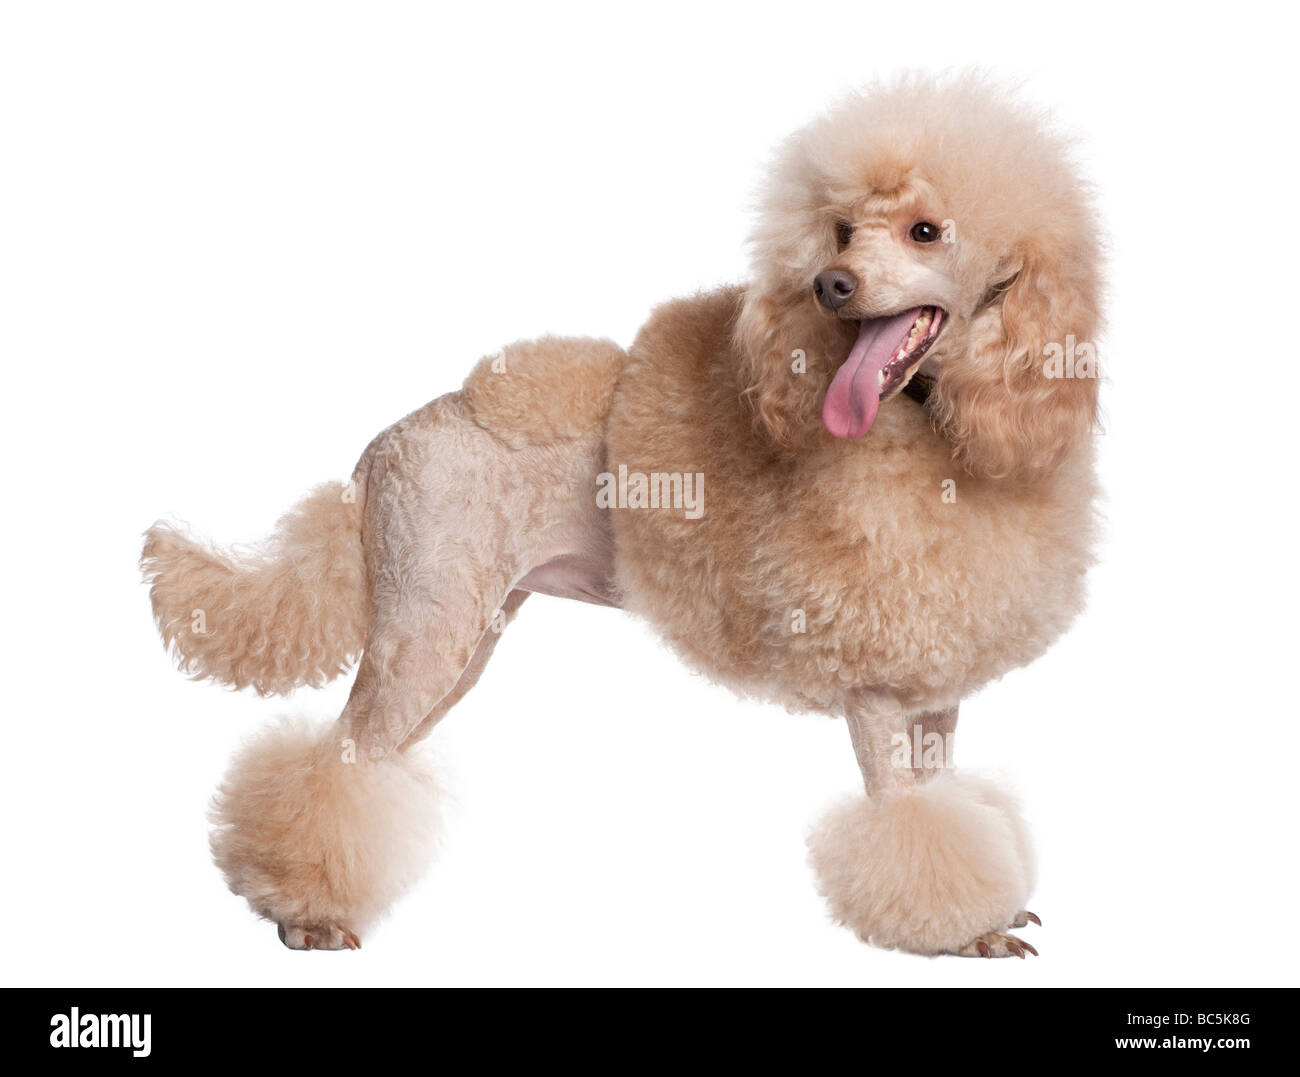 groomed apricot poodle 2 years old in front of awhite background - Stock Image